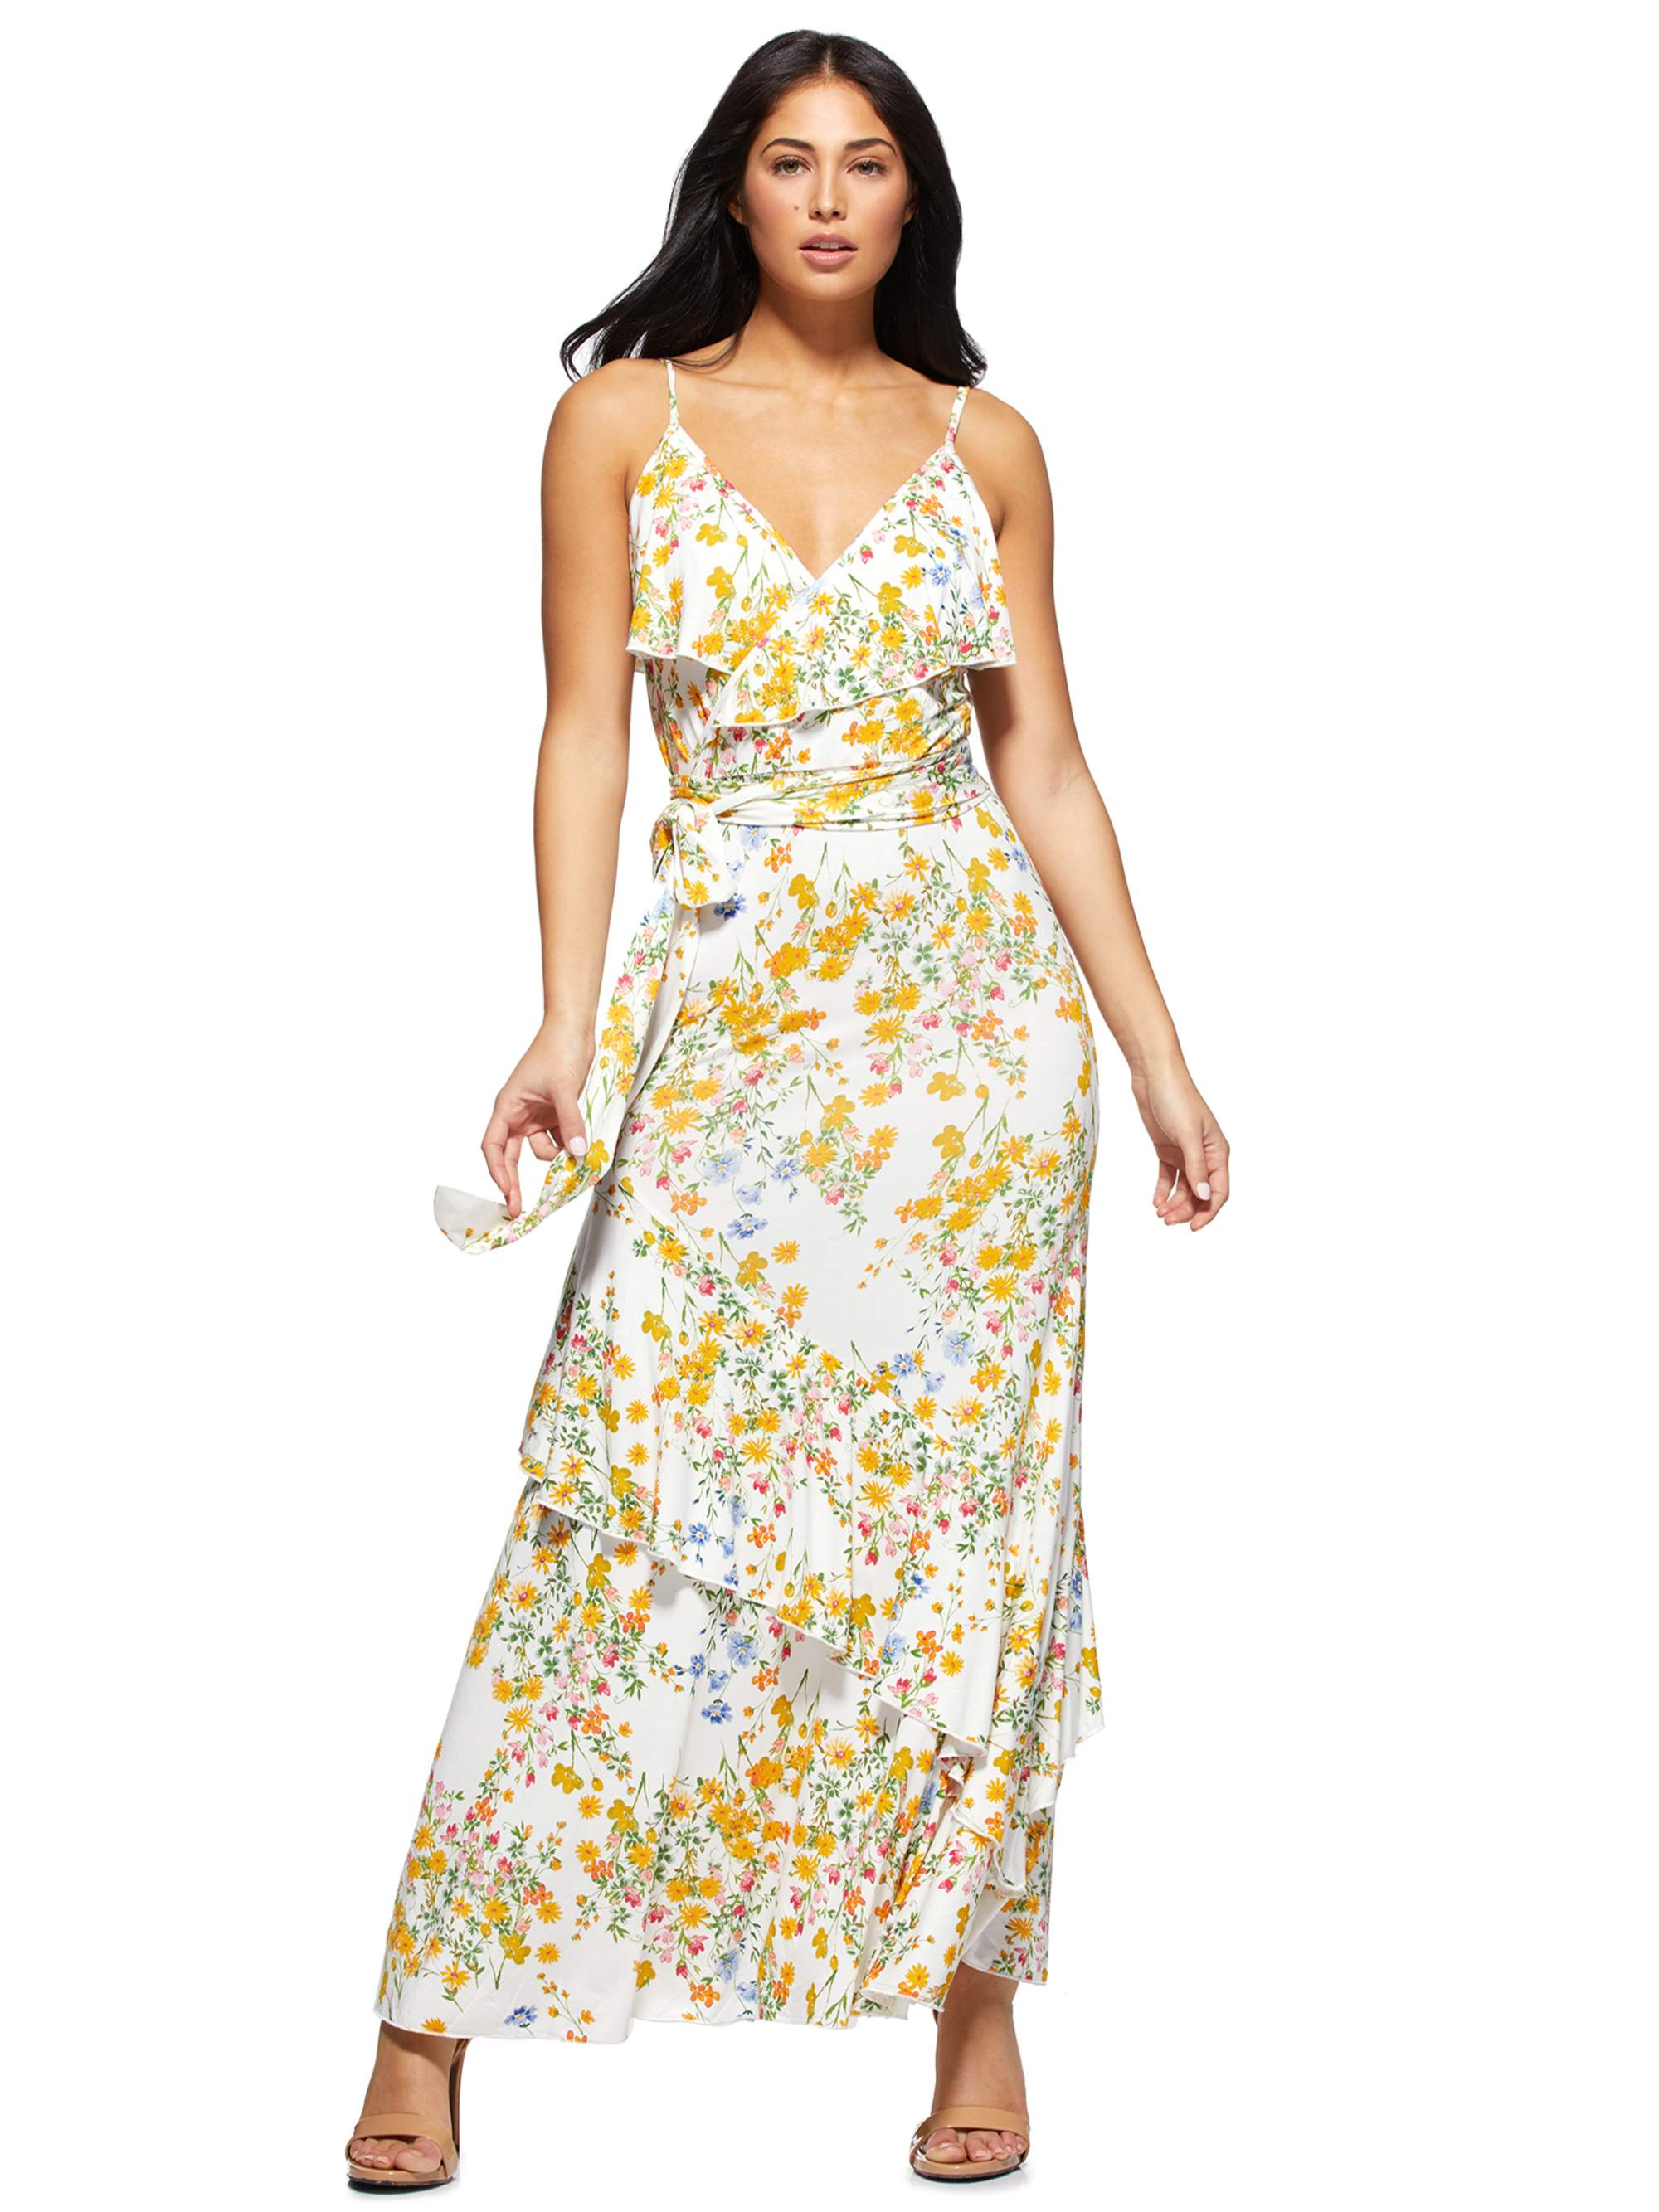 Sofia Vergara rocking a White floral printed Walmart wrap dress with a georgette material, floral print, a V-neck, spaghetti straps, cinched waist and layered hem